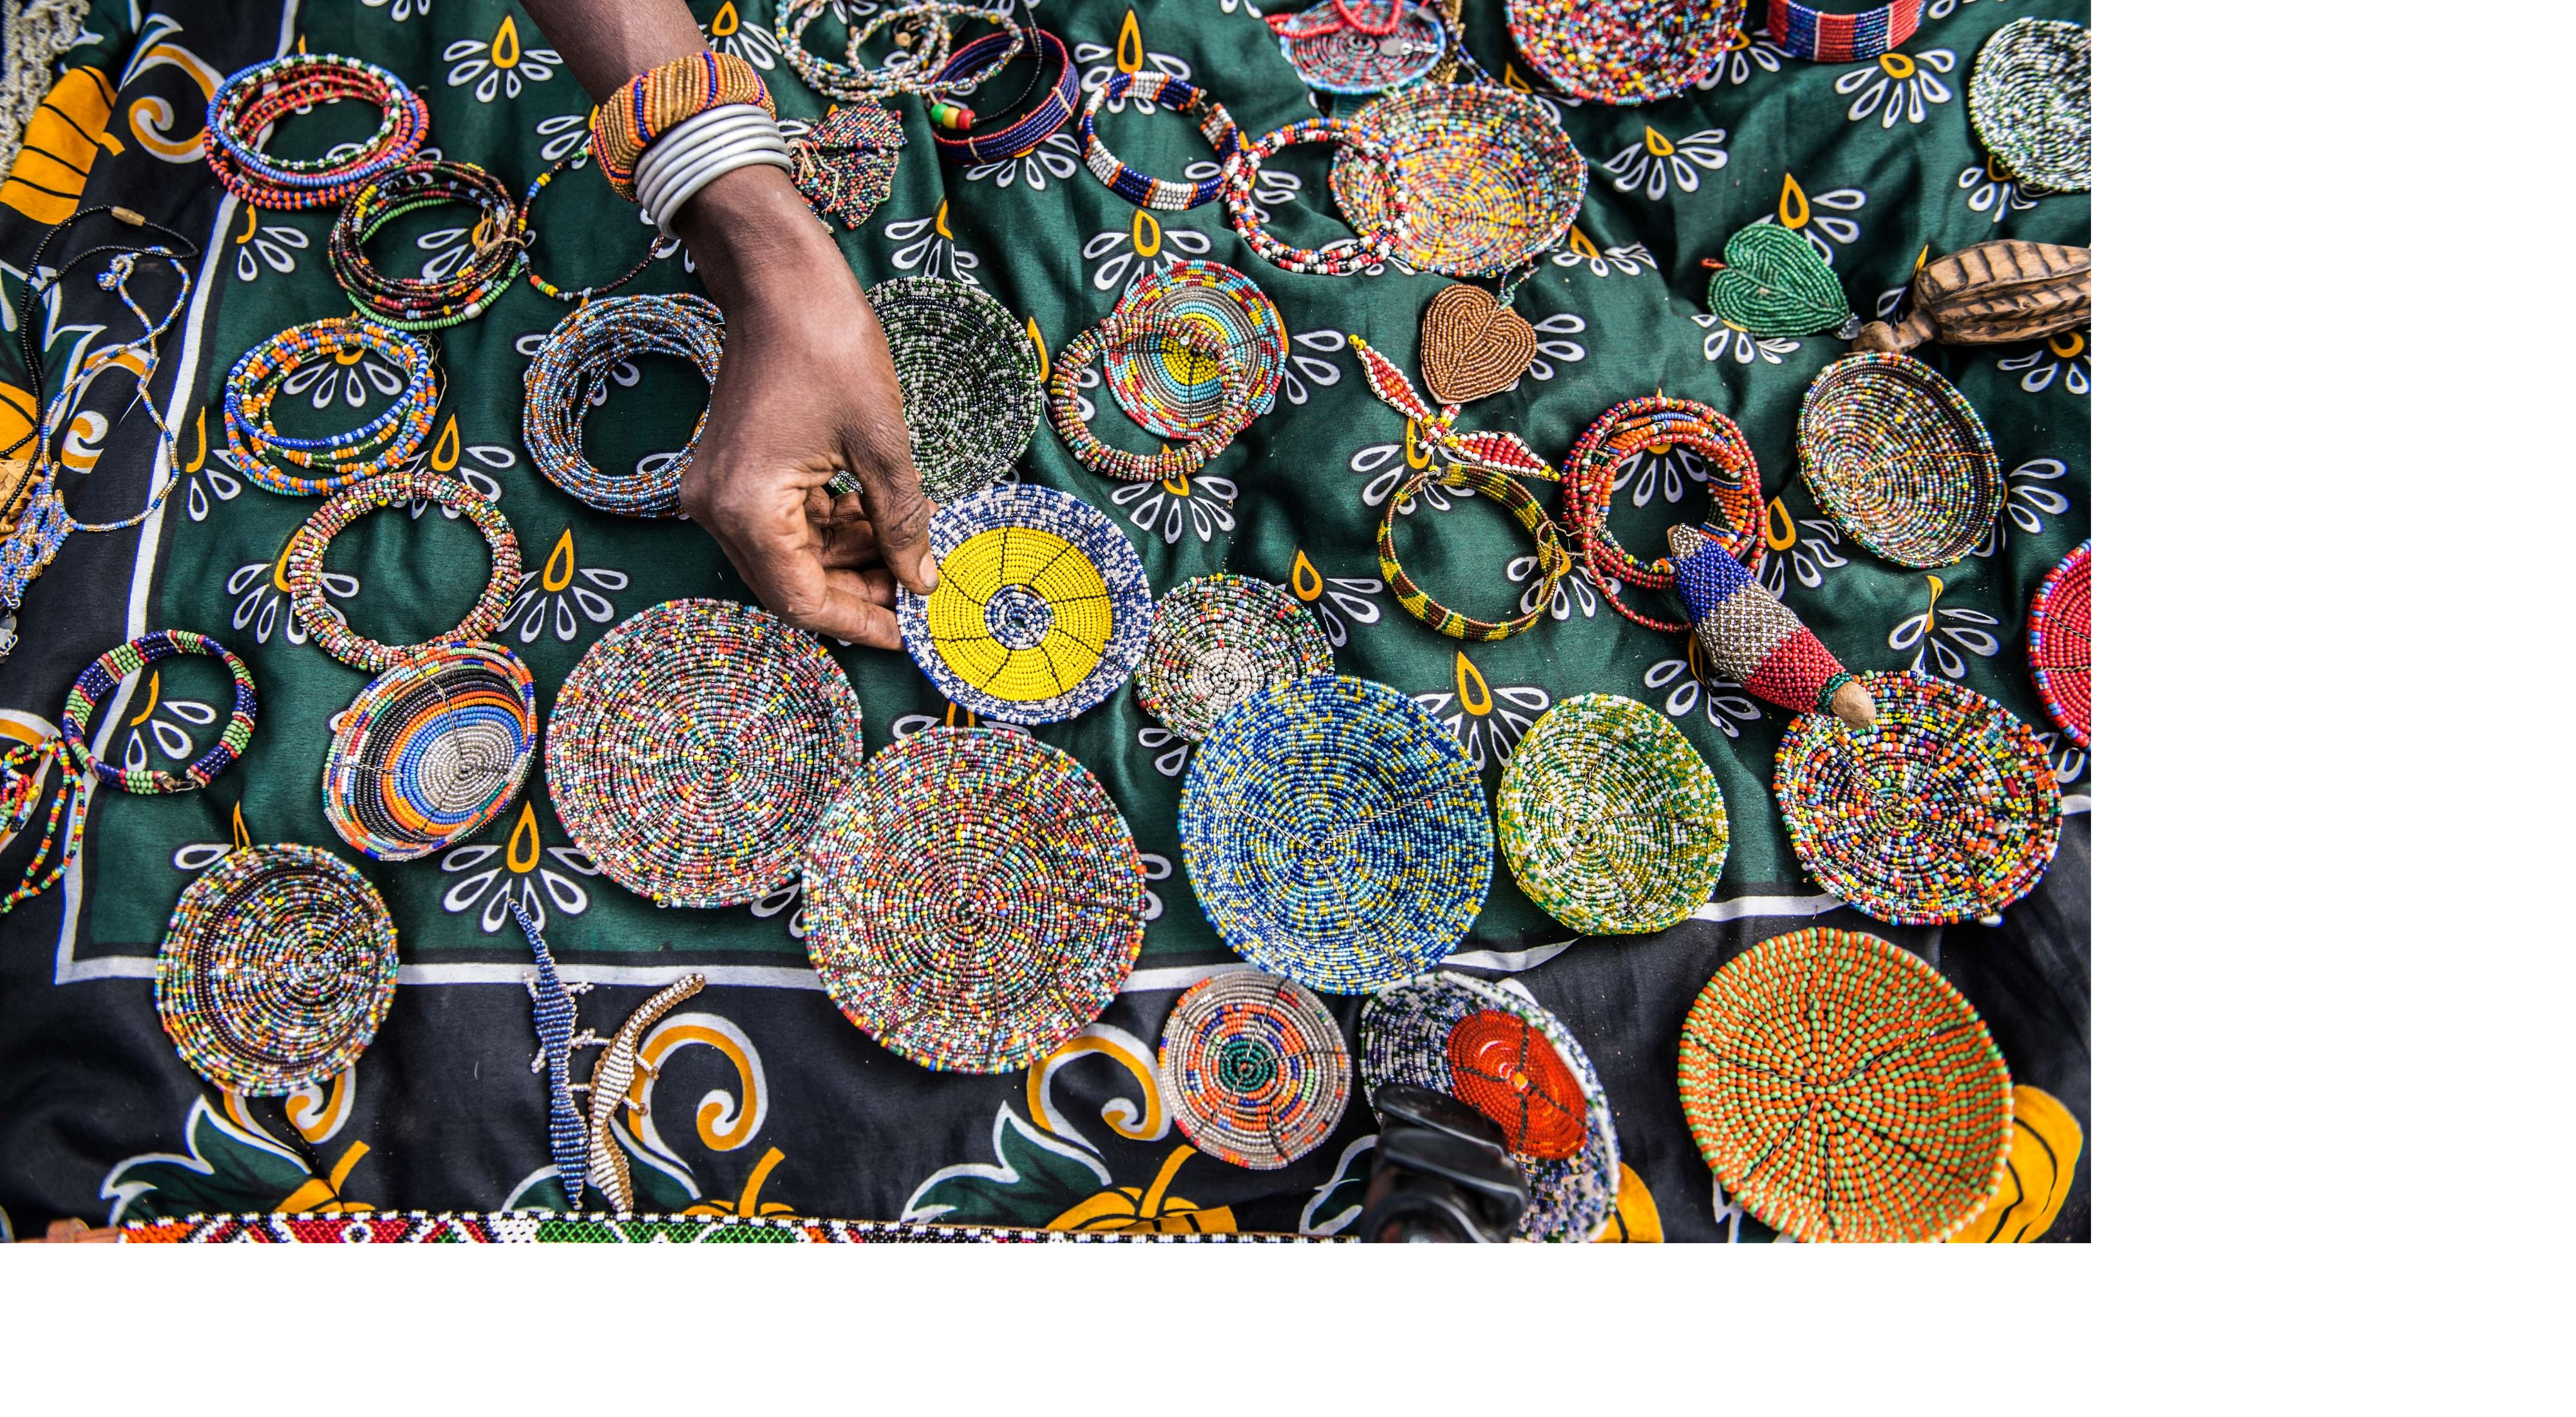 colorful beaded crafts